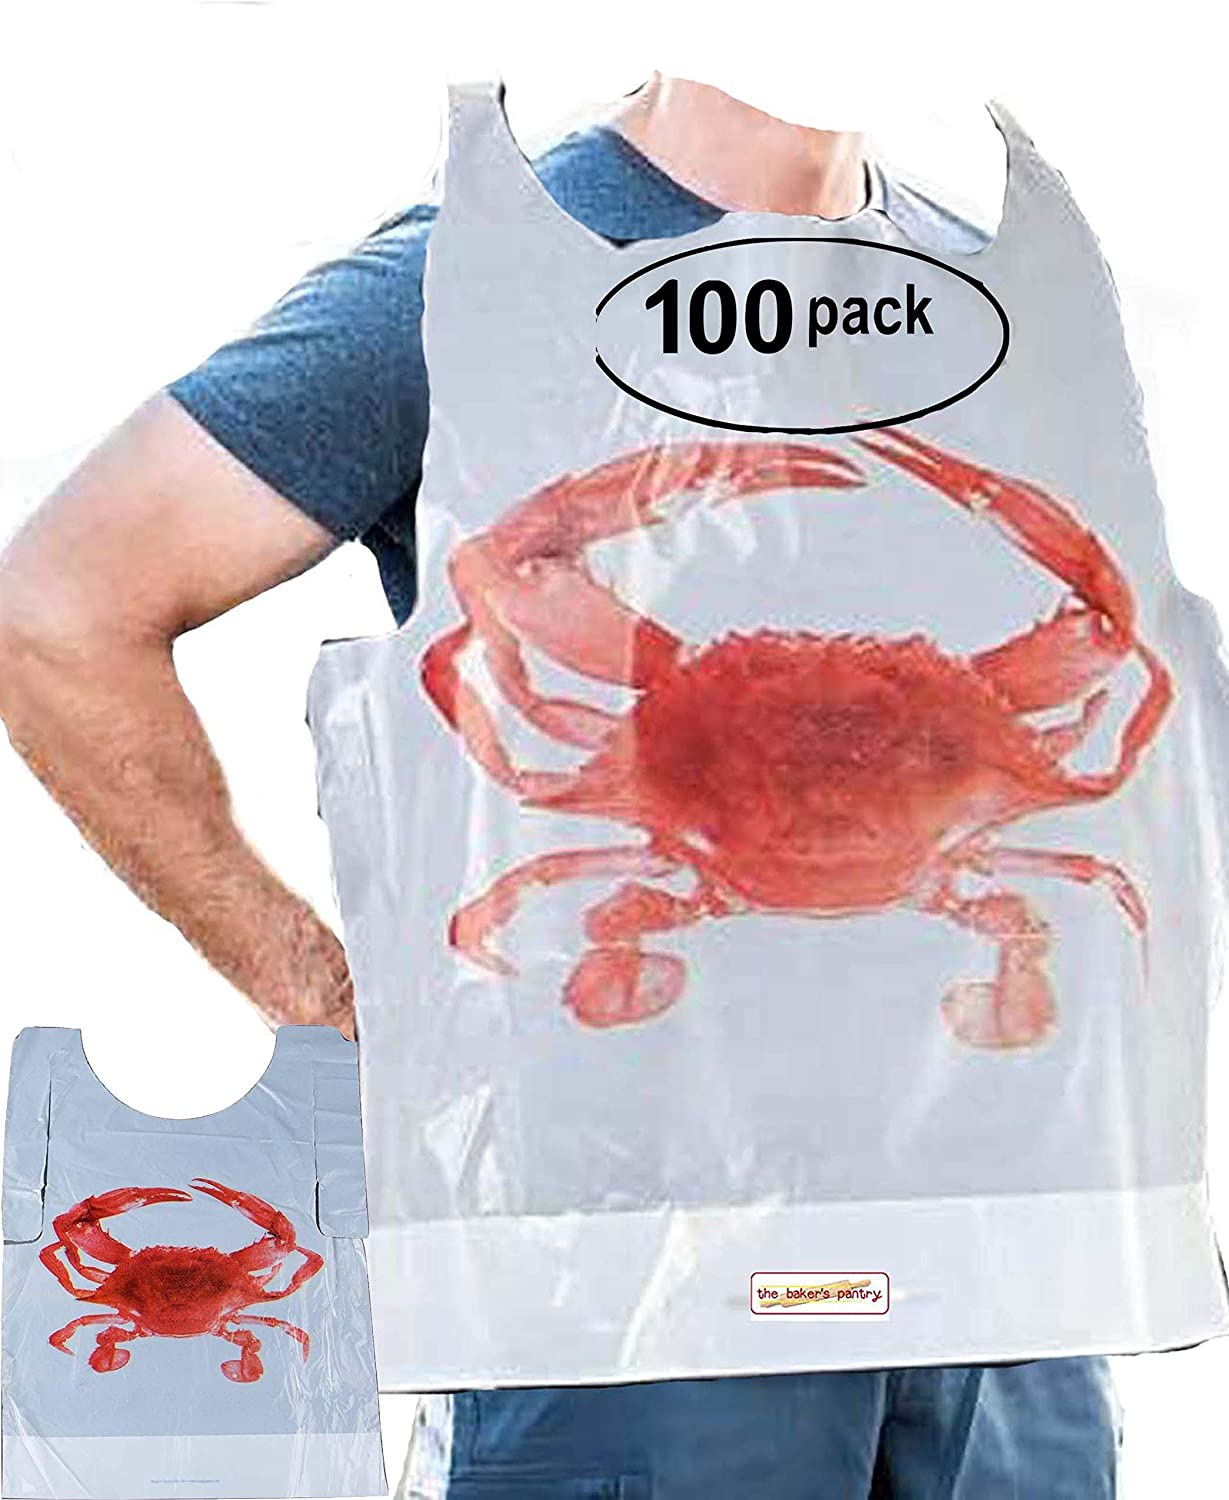 pack of 100 Party Supply Crab Bibs Seafood Feast Adult Disposable Bibs Protect Clothes from Spills Plastic Bibs disposable bibs for adults Size: 20